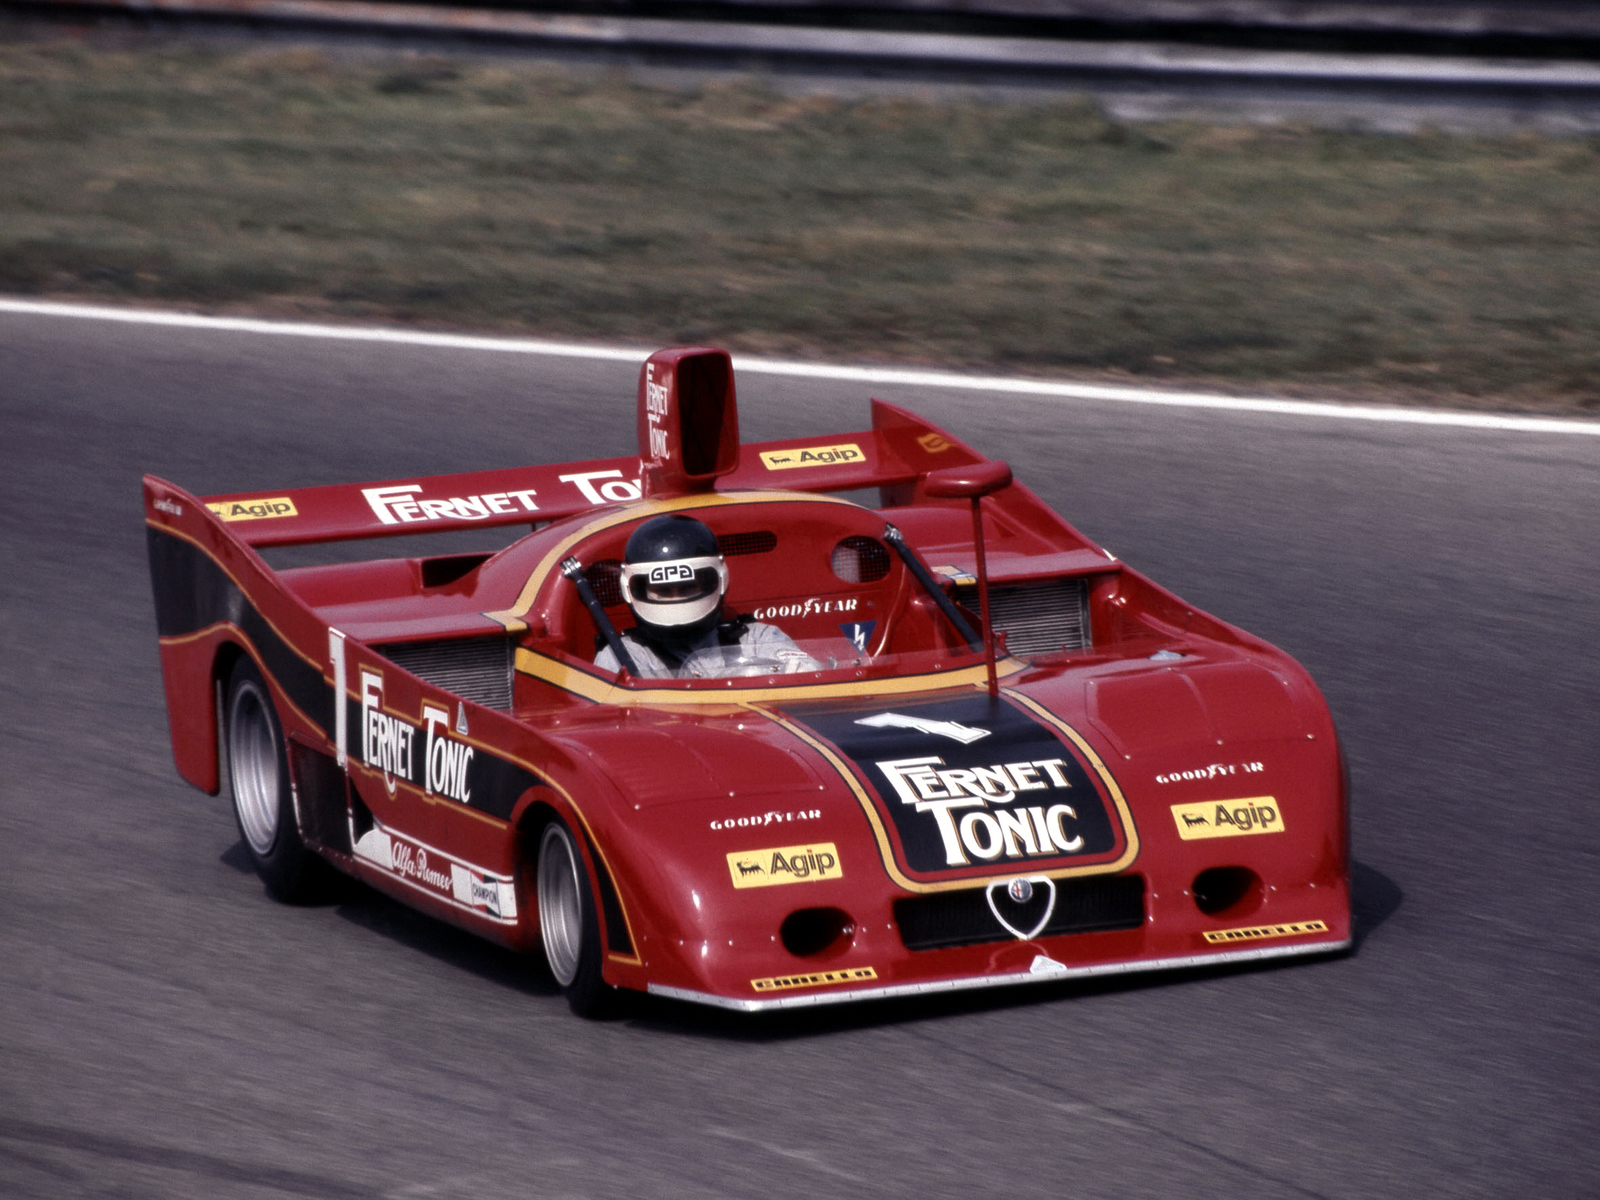 1976 alfa romeo tipo 33sc12 group c le mans race racing wallpaper 1600x1200 144587 wallpaperup. Black Bedroom Furniture Sets. Home Design Ideas